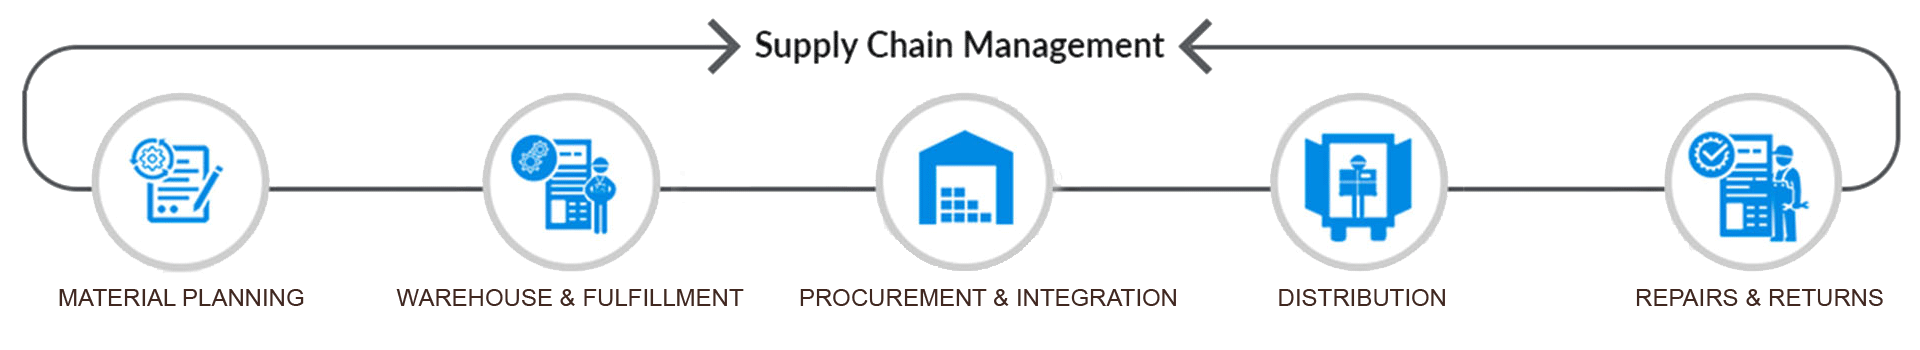 warehousing in supply chain Browse procurement and warehousing content selected by the supply chain brief community.